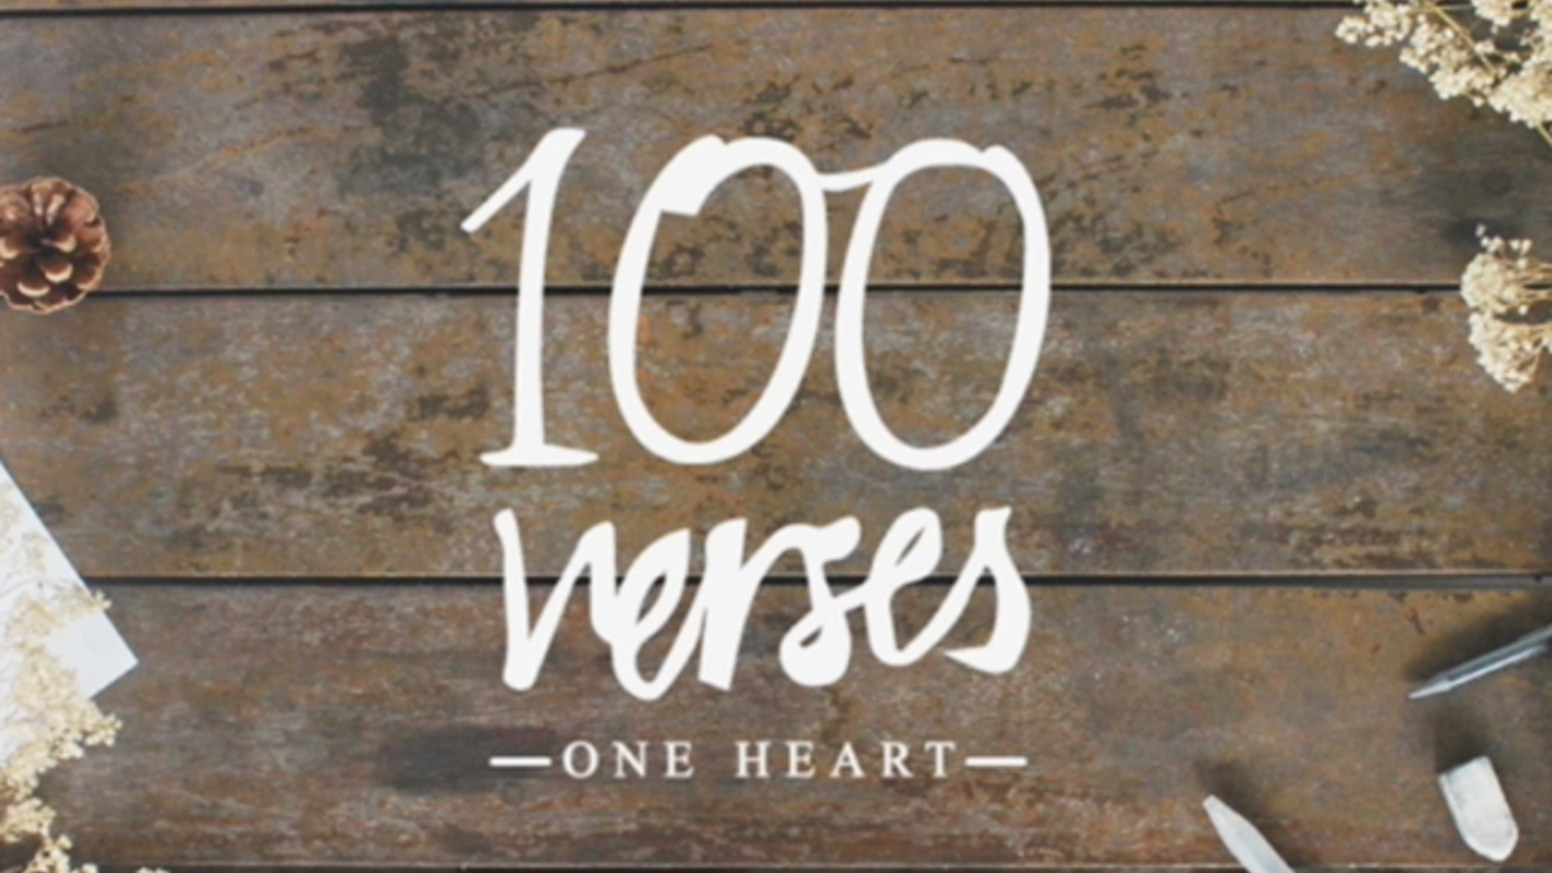 100 verses one heart by yuhui wang kickstarter 100 verses one heart freerunsca Image collections